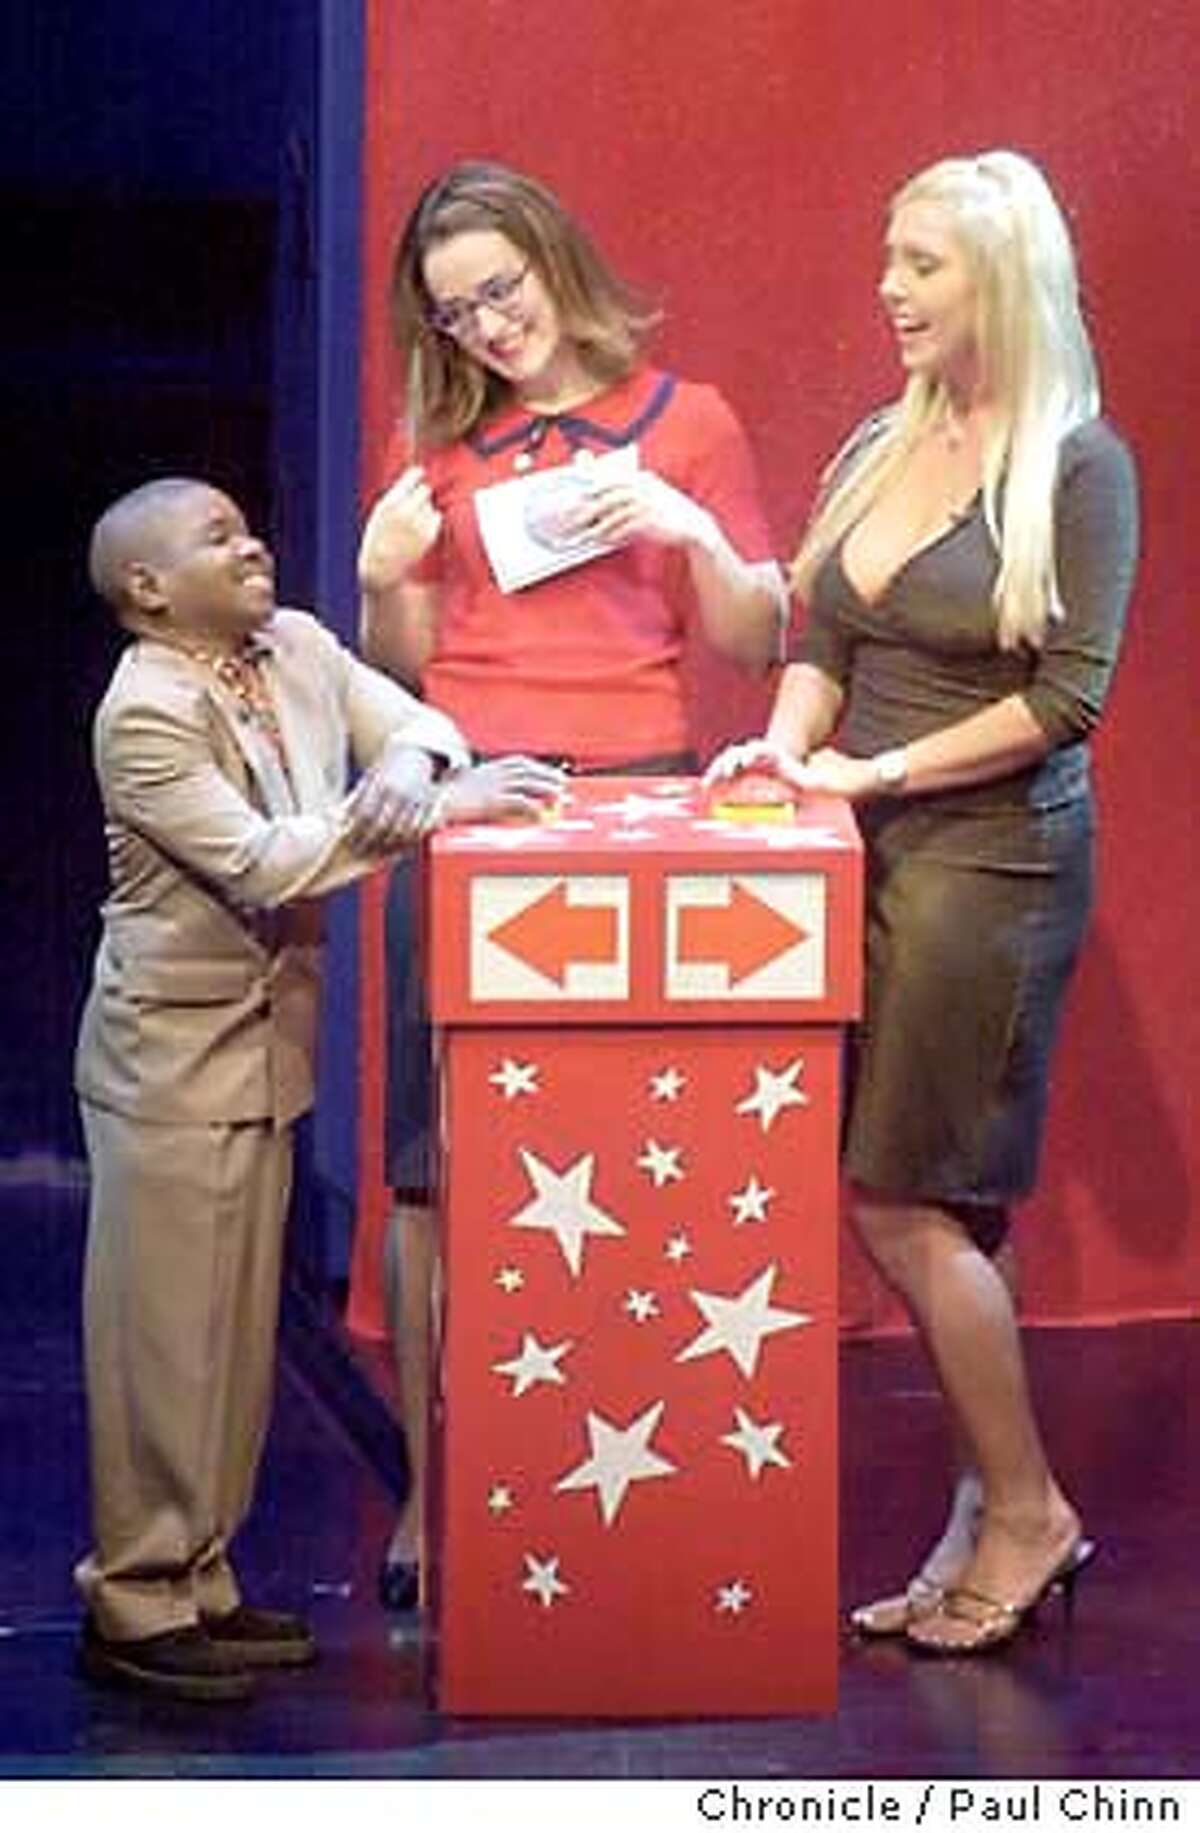 career26287_pc.jpg Gary Coleman flirts with host Kennedy (center) and Mary Carey during the game. The Game Show Network's